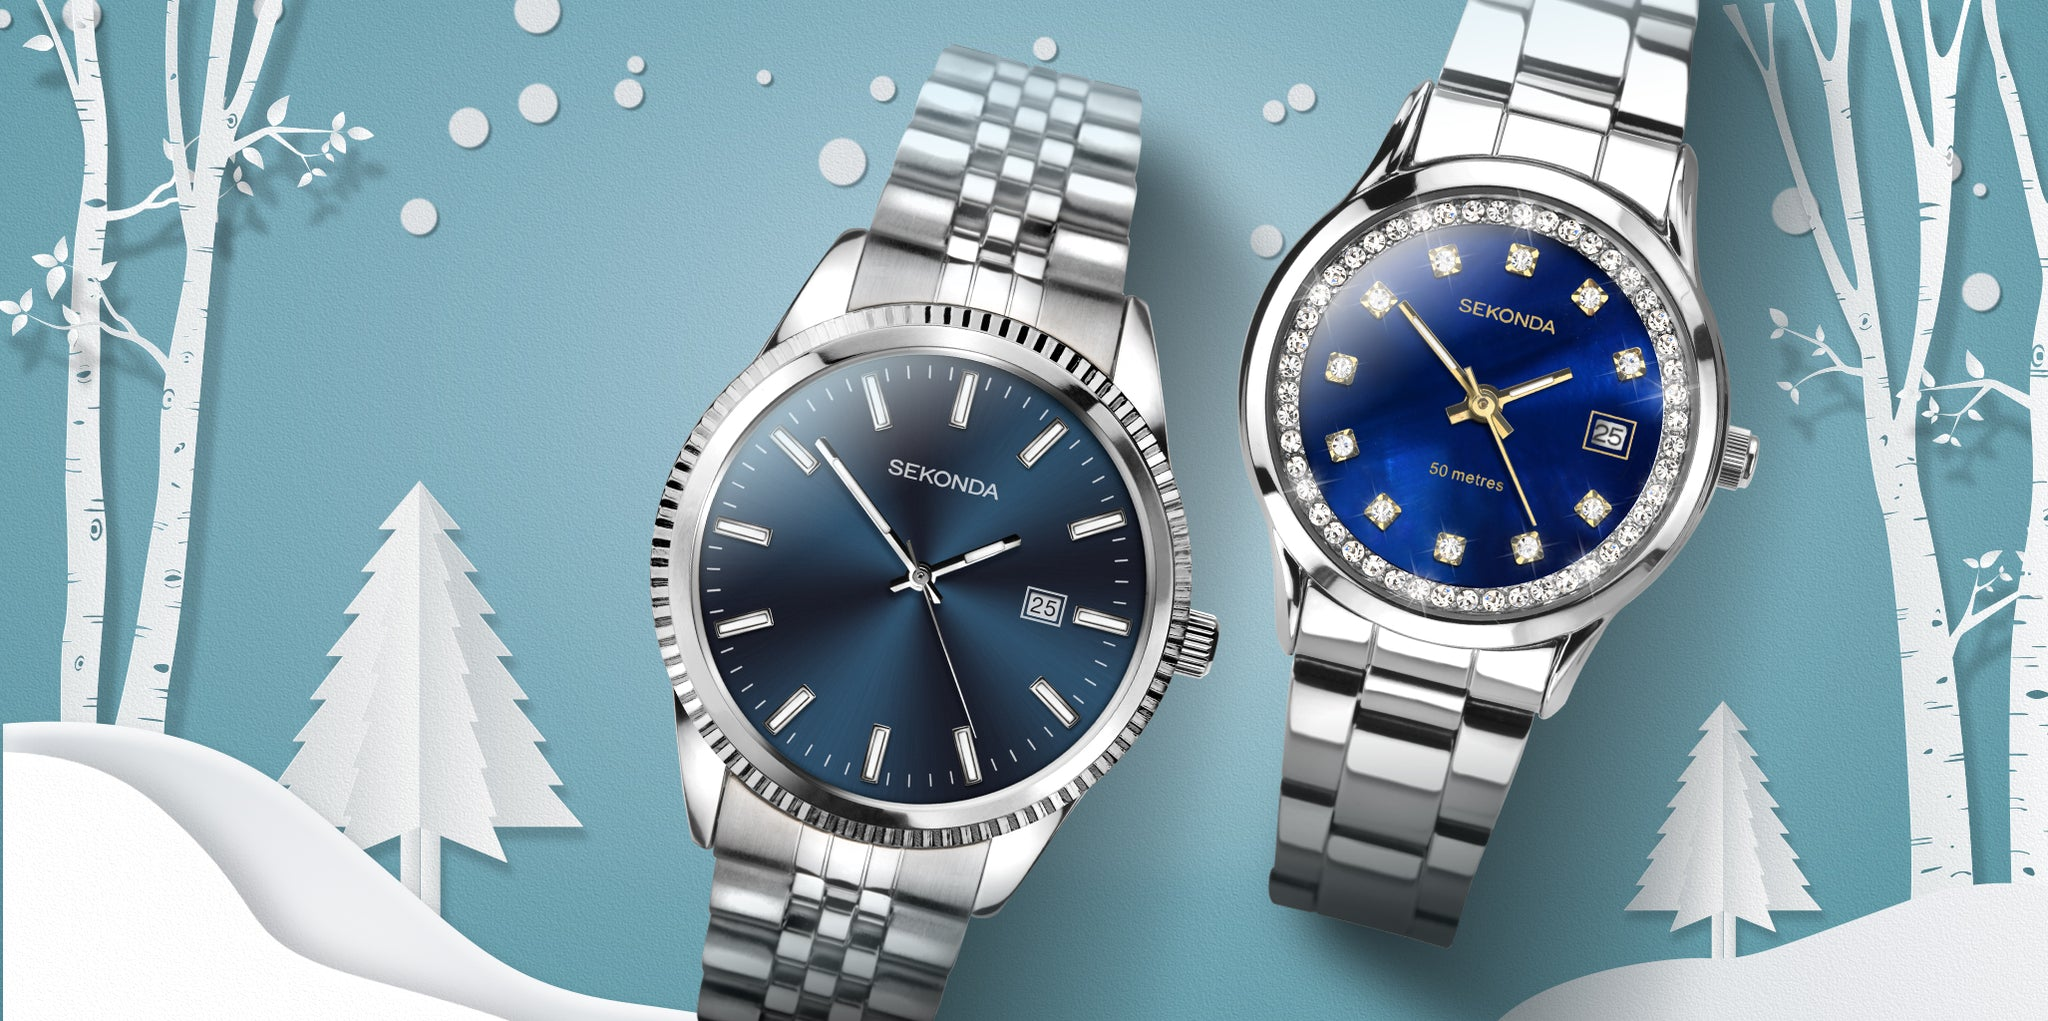 Sekonda Christmas gifts from £39.99